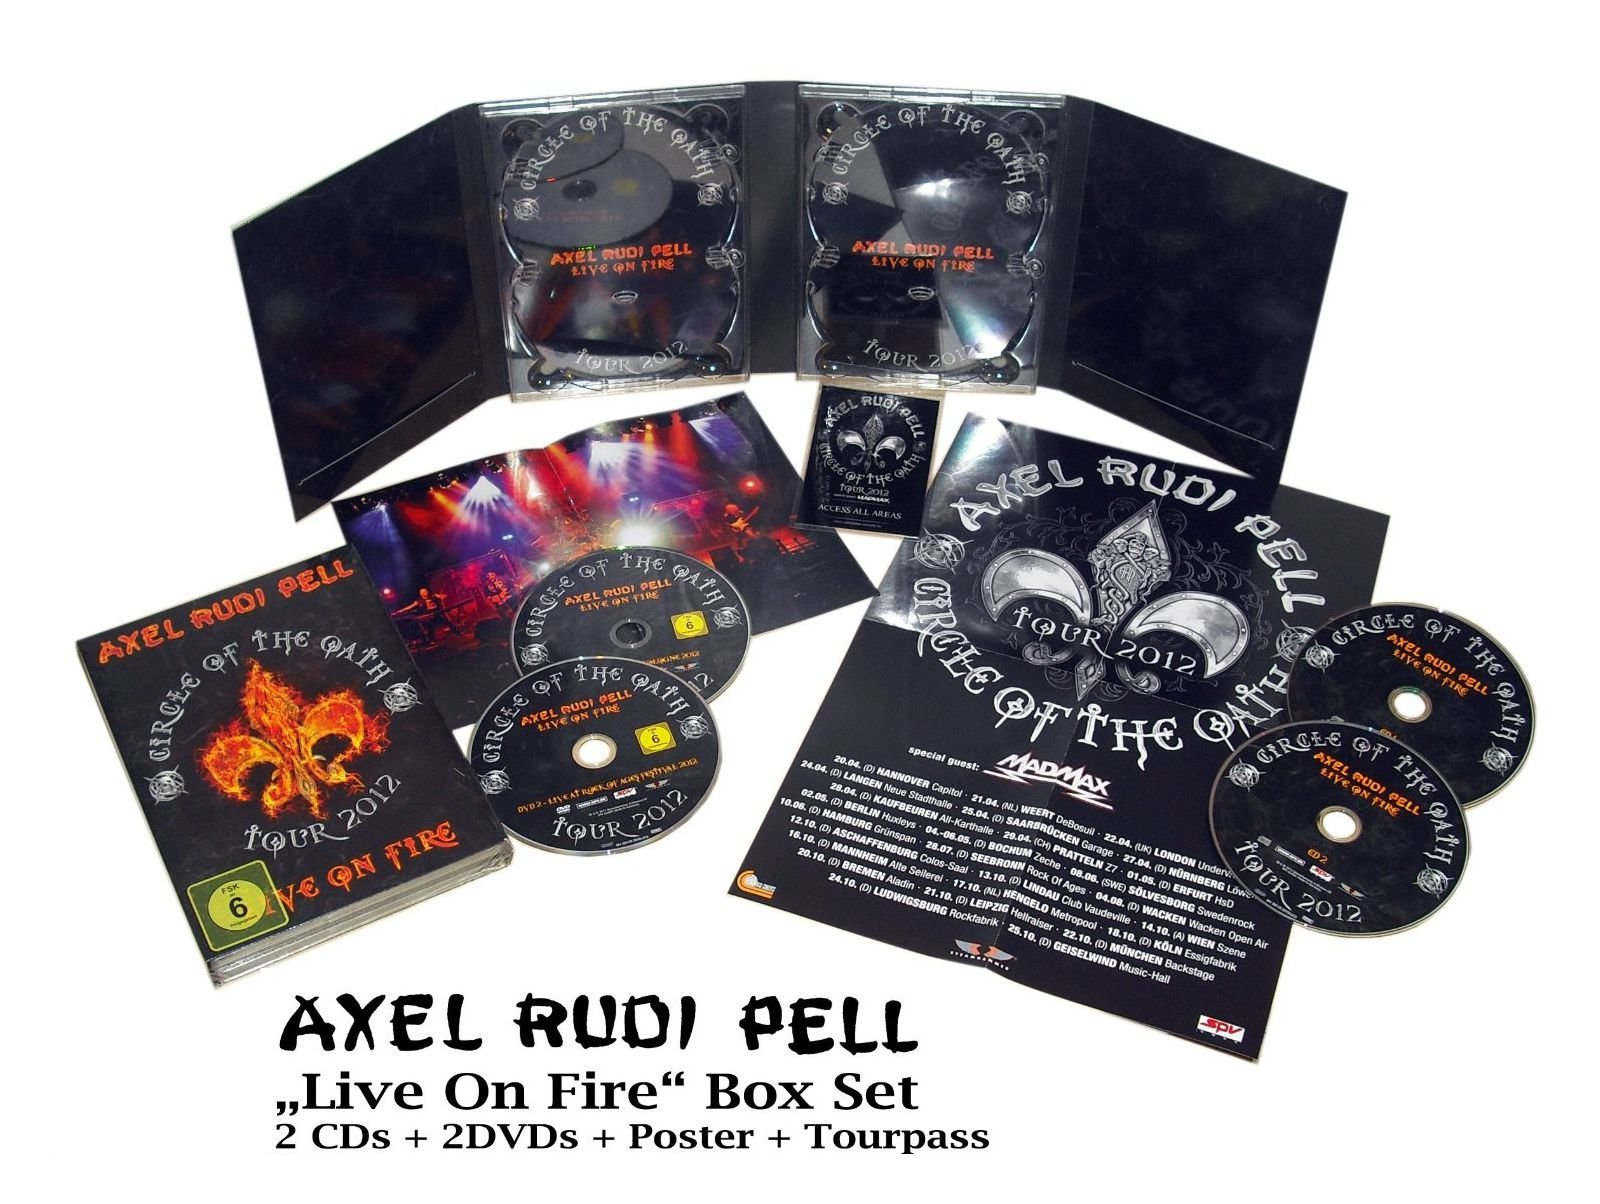 DVD : Axel Rudi Pell - Live On Fire (Boxed Set 4 Disc)